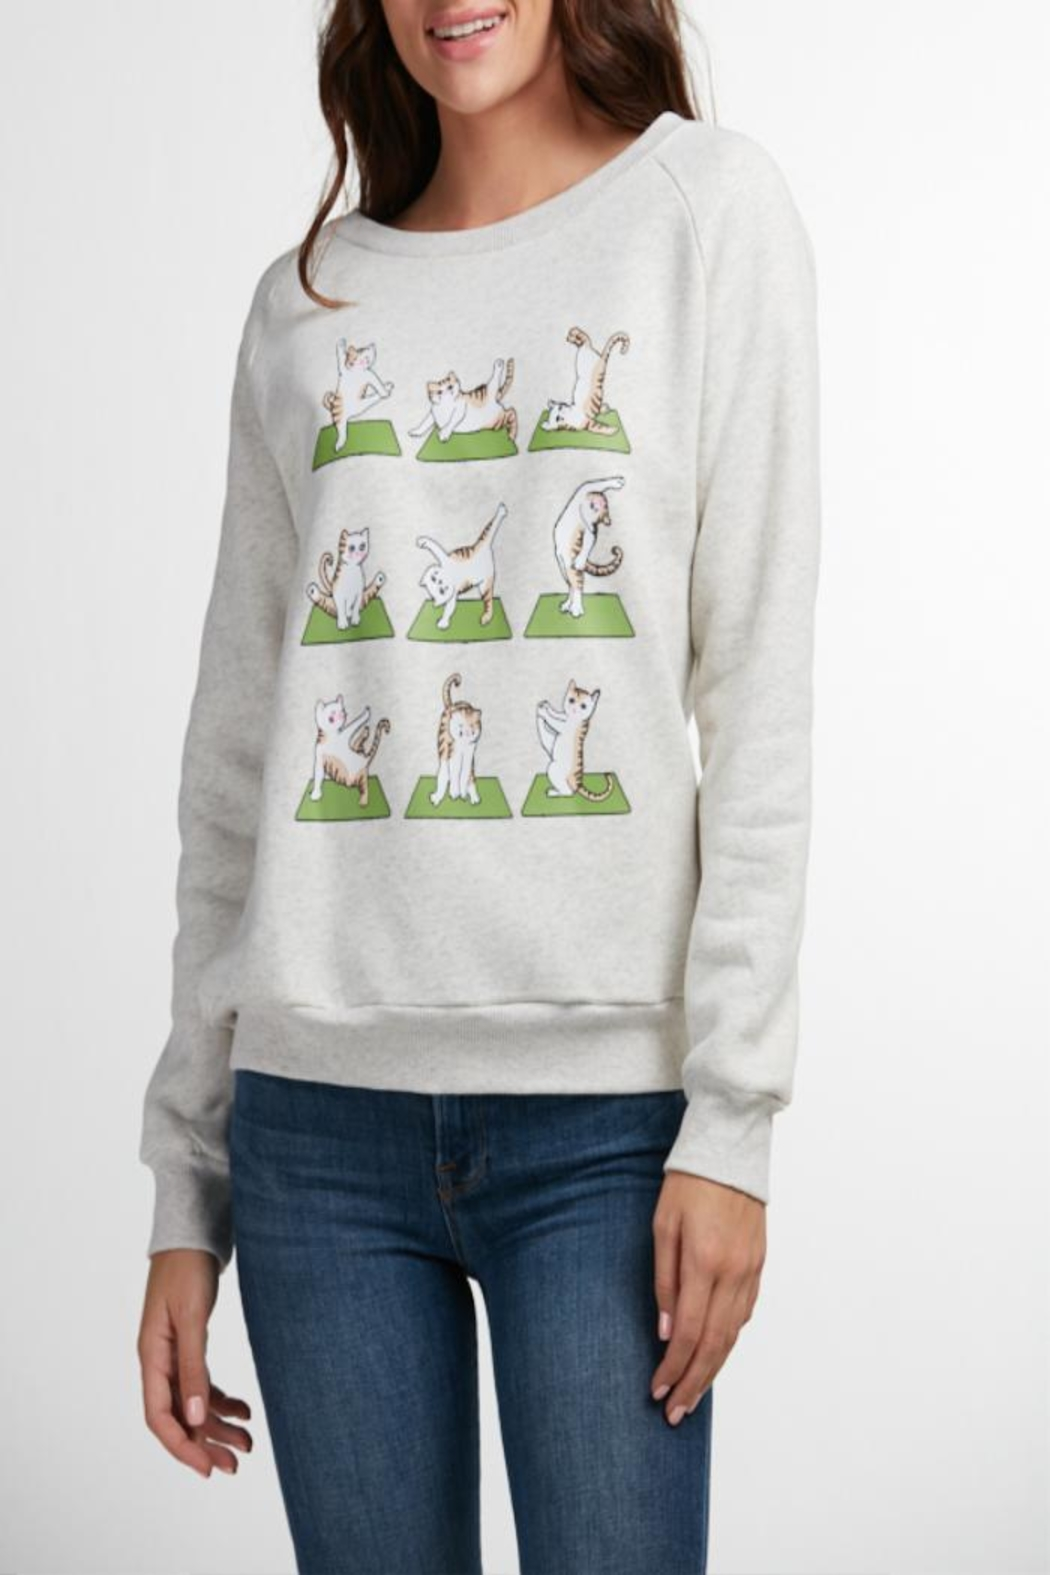 Patricia's Presents Yoga Cat Sweatshirt - Front Cropped Image